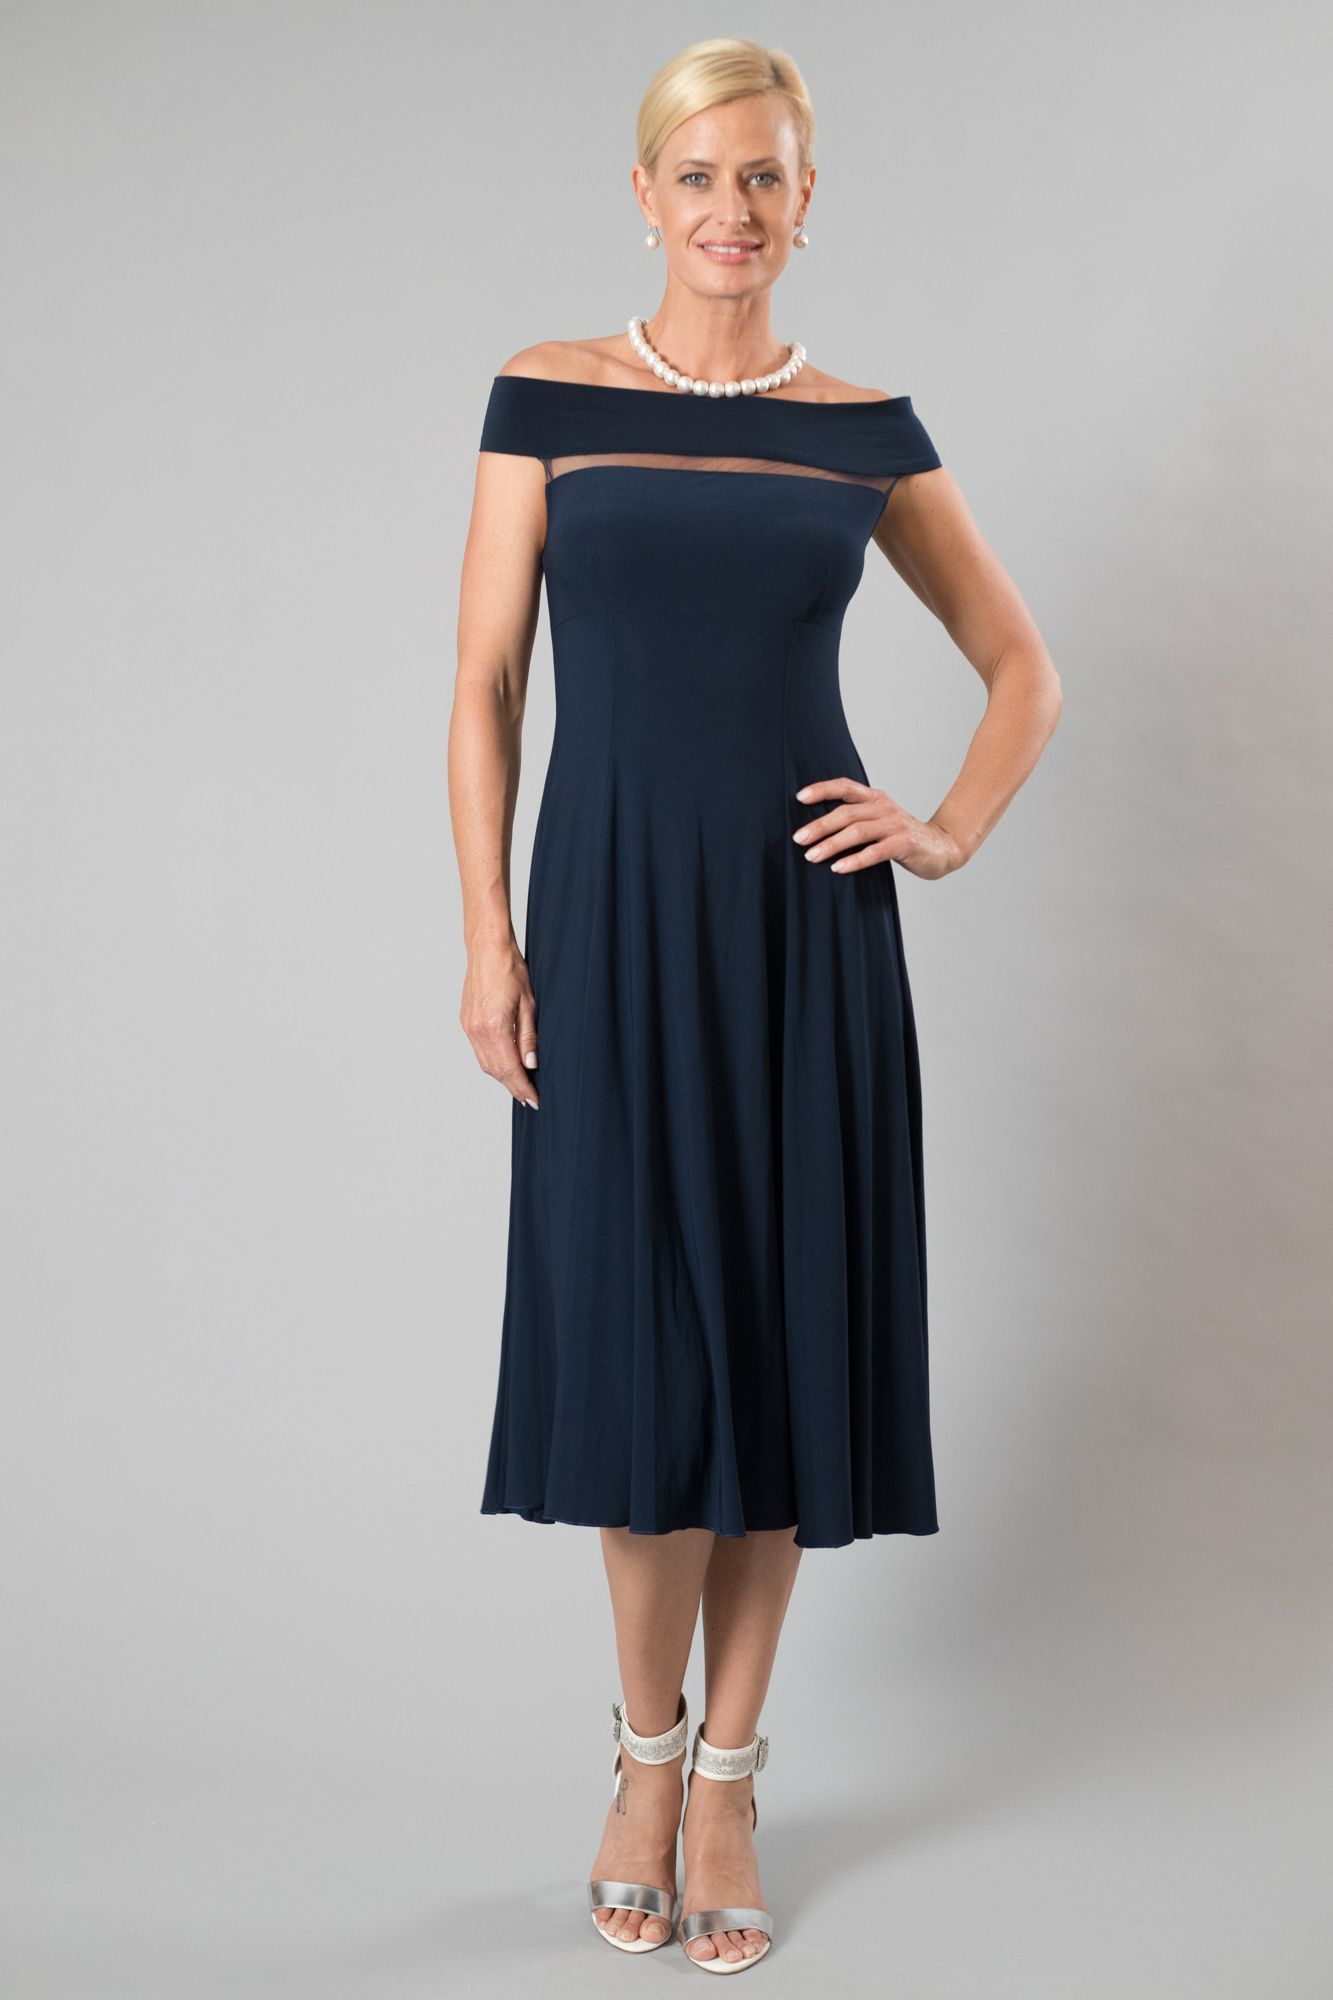 33d2fdd8261 Living Silk - specializing in navy dresses and two piece outfits with  sleeves for the modern and elegant mother of the bride and mother of the  groom.